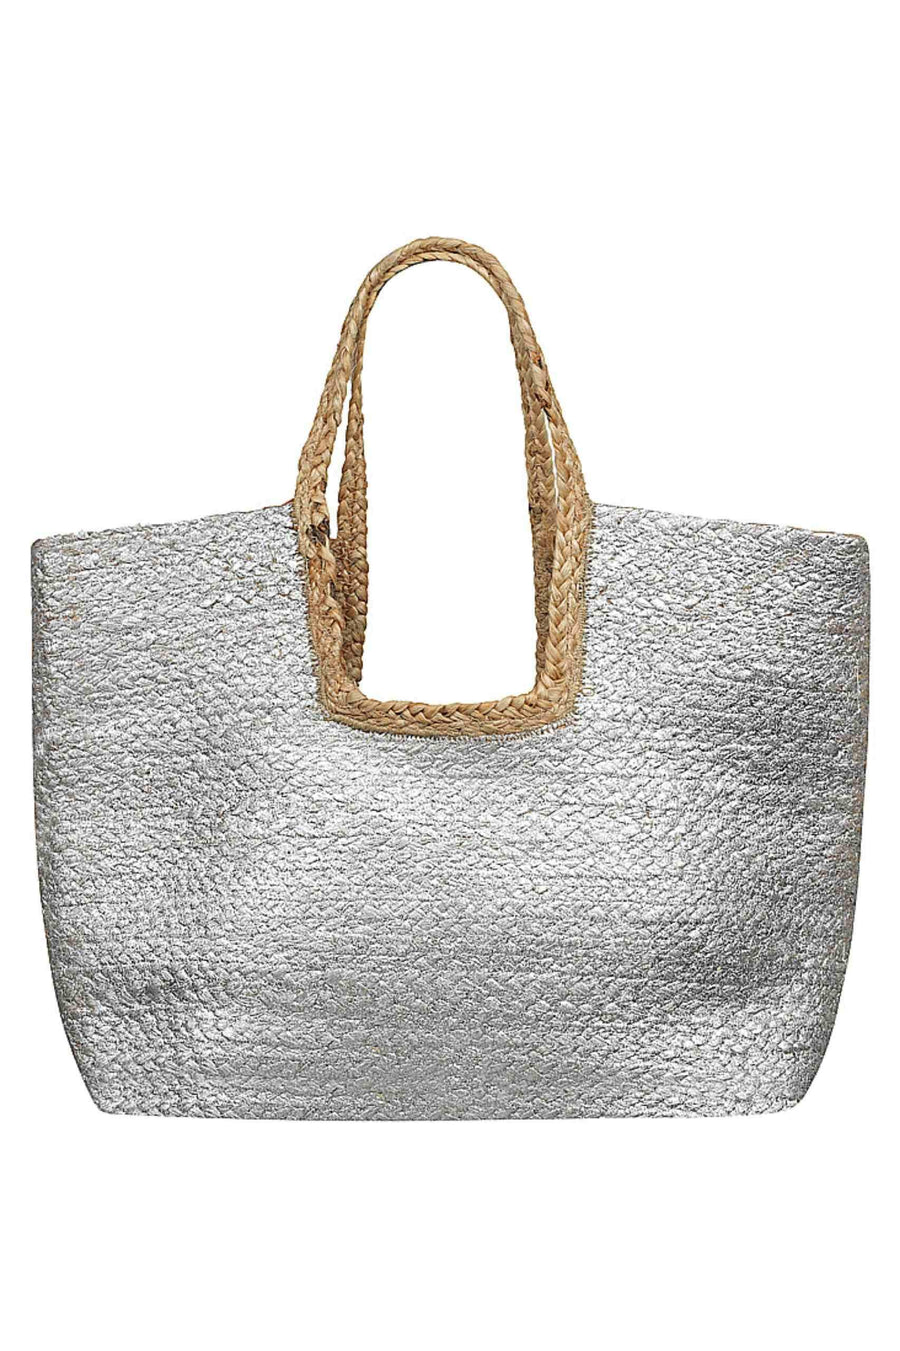 Beach Bag - Natural and Silver Capriosca Swimwear Australia